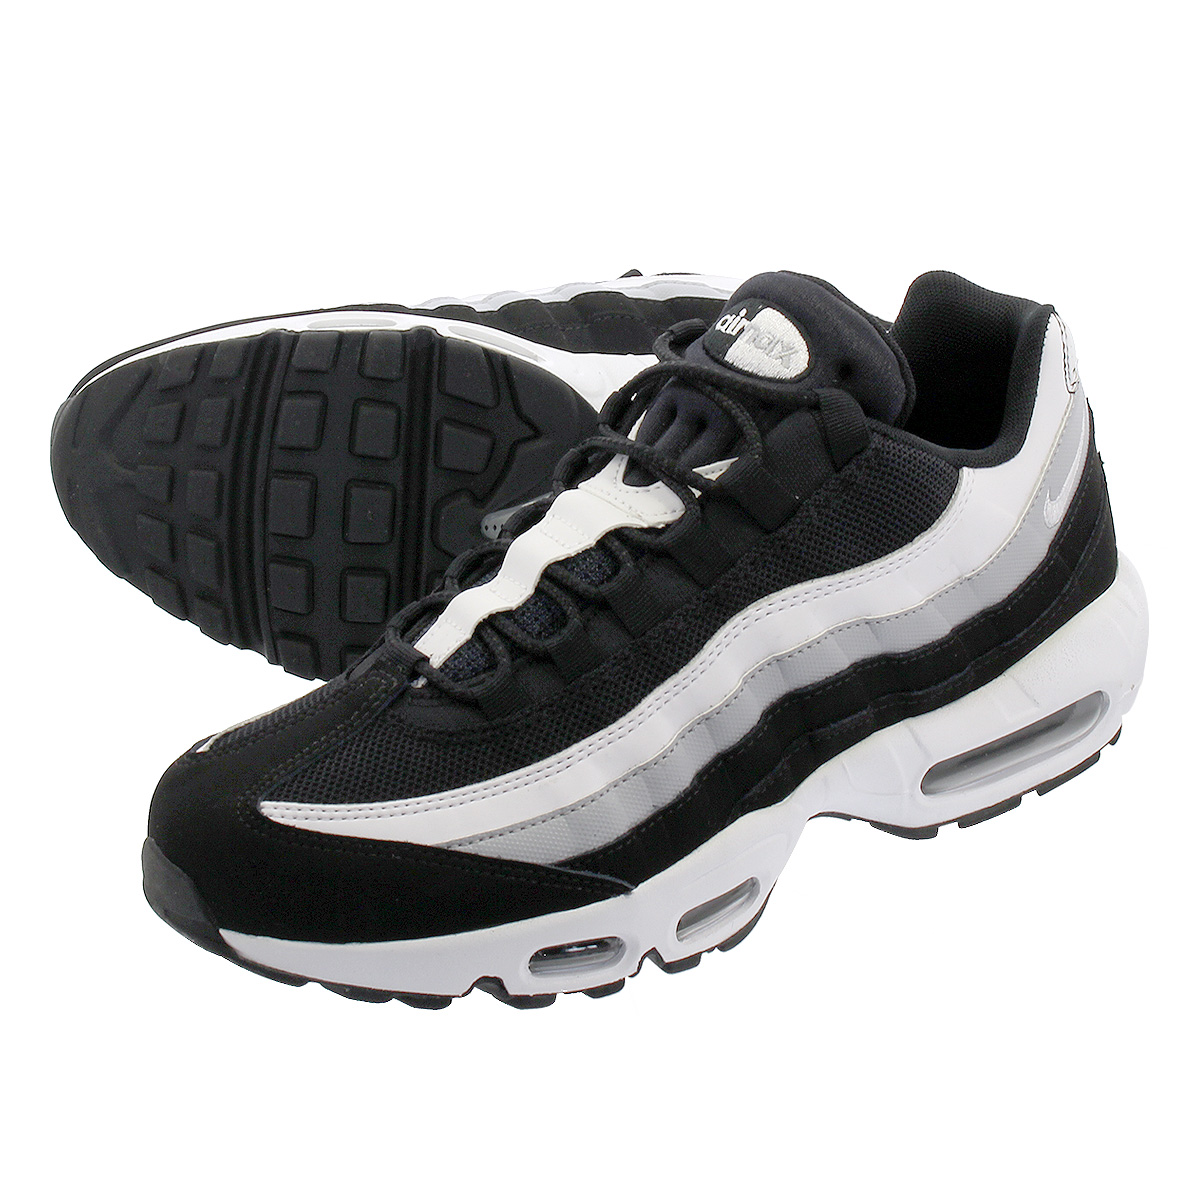 half off a84dd 62dd7 NIKE AIR MAX 95 ESSENTIAL Kie Ney AMAX 95 essential BLACK WHITE WOLF GREY  749,766-038